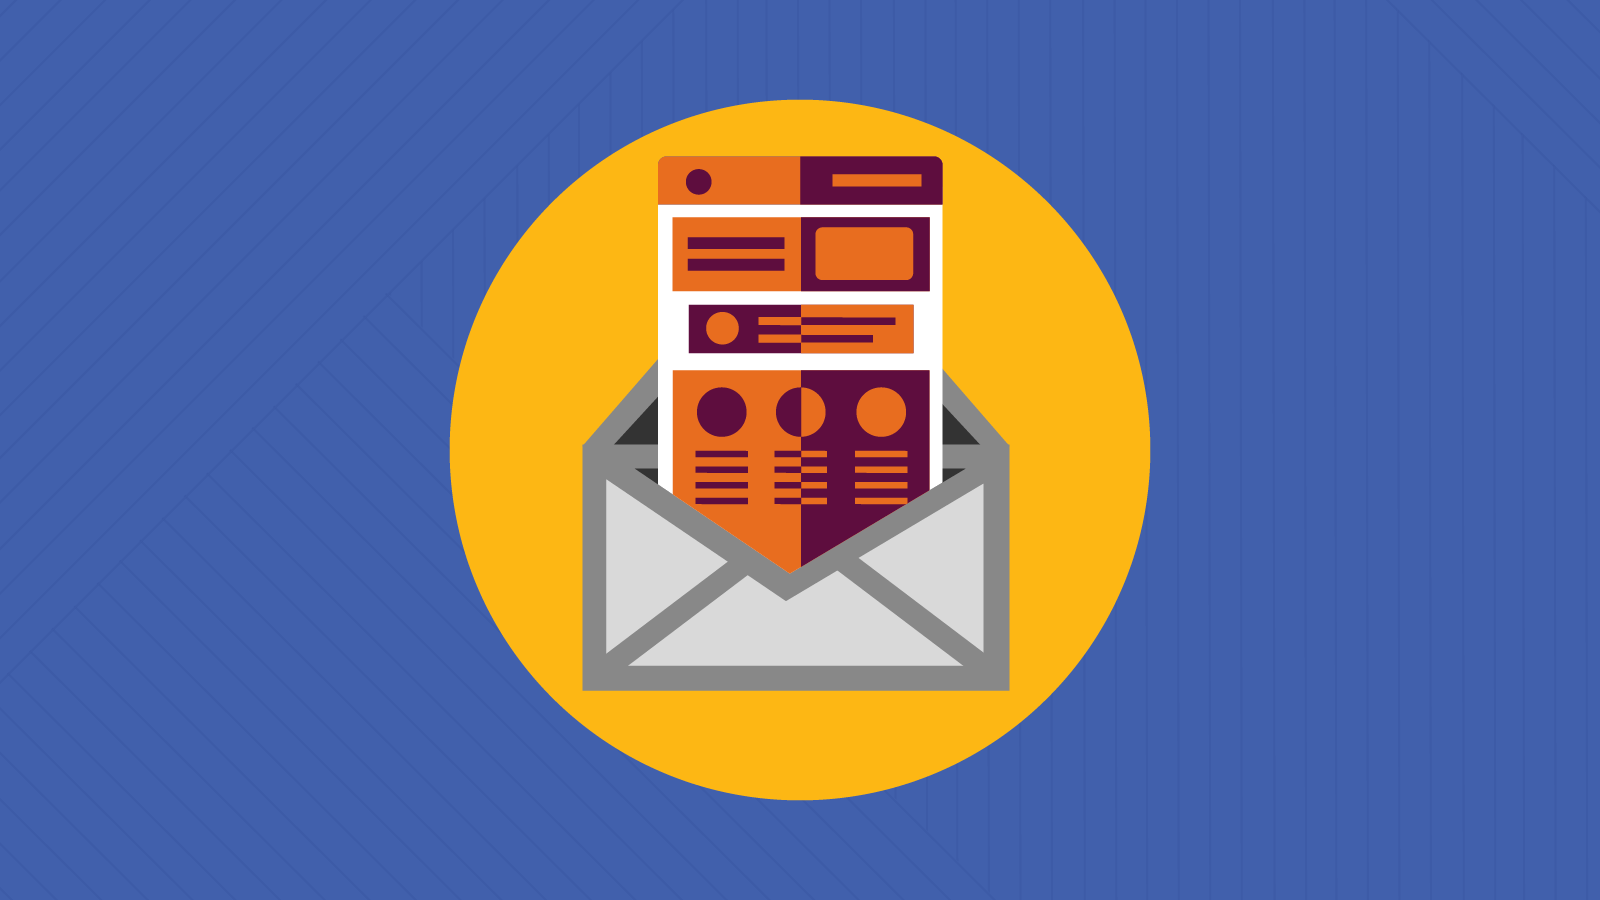 Illustration of email design with contrasting colors